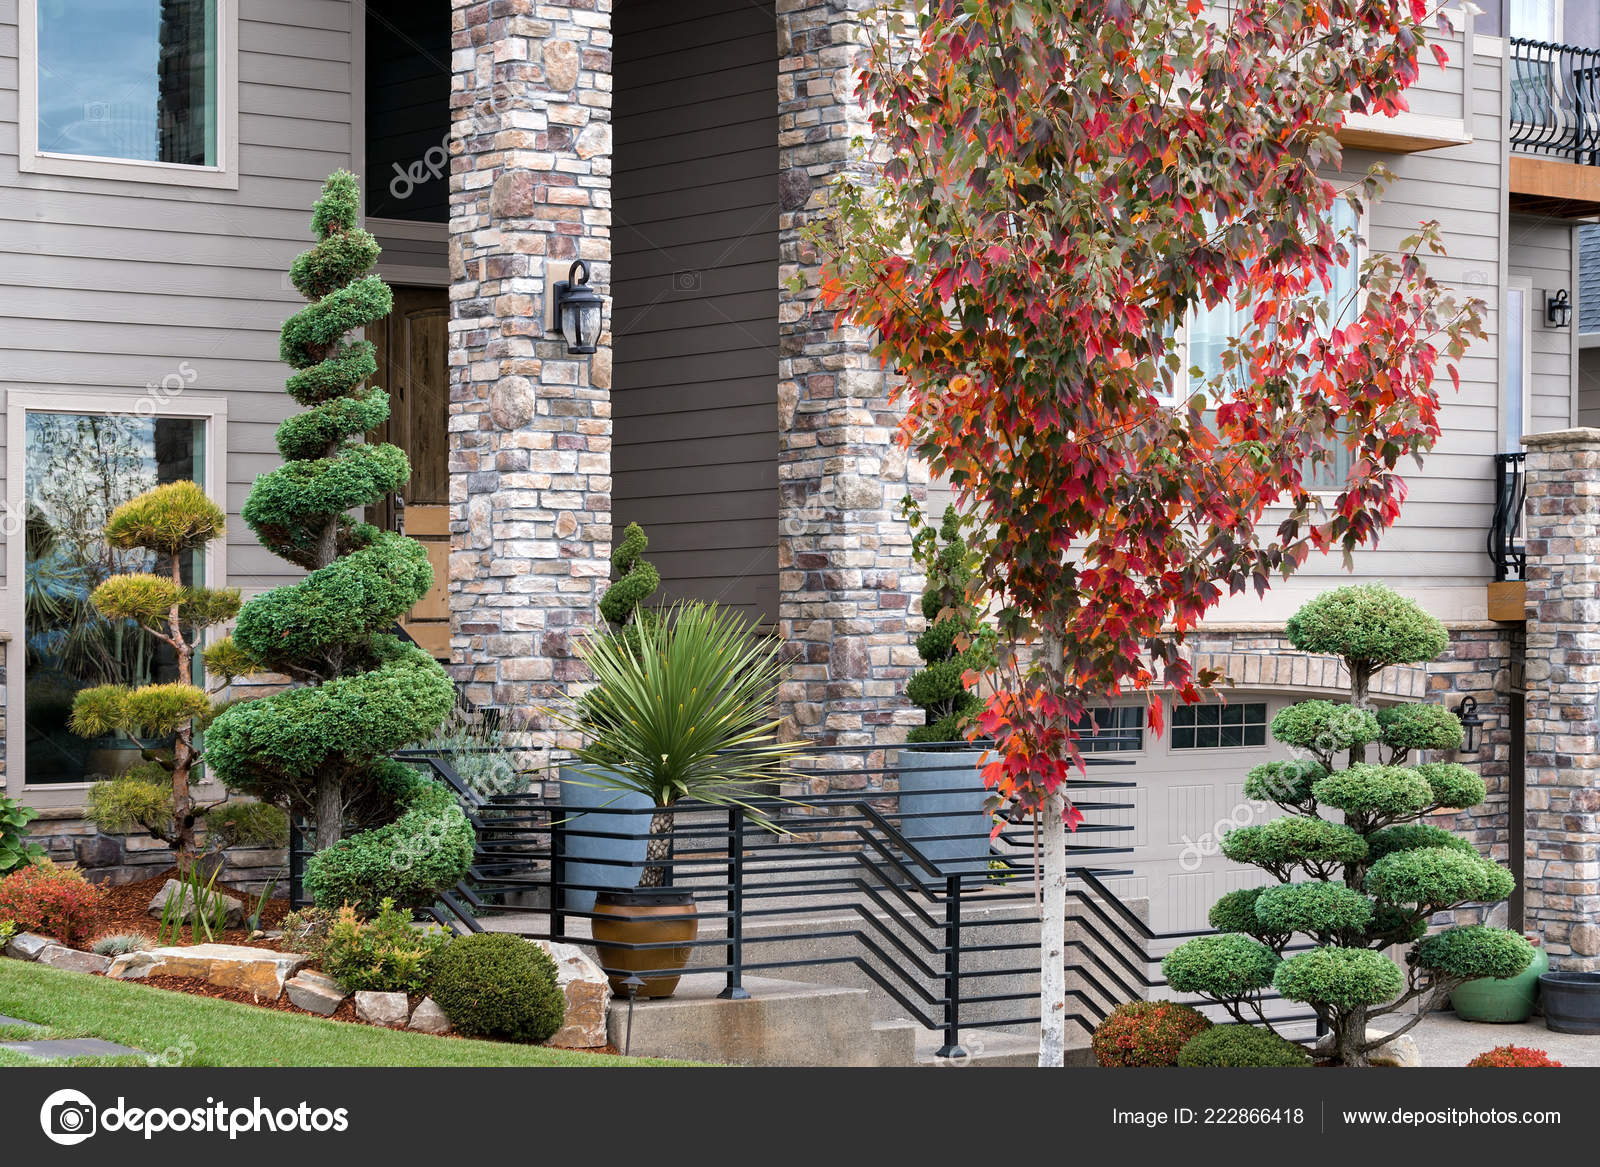 Manicured Garden Front Yard Home Topiary Trees Potted Plants